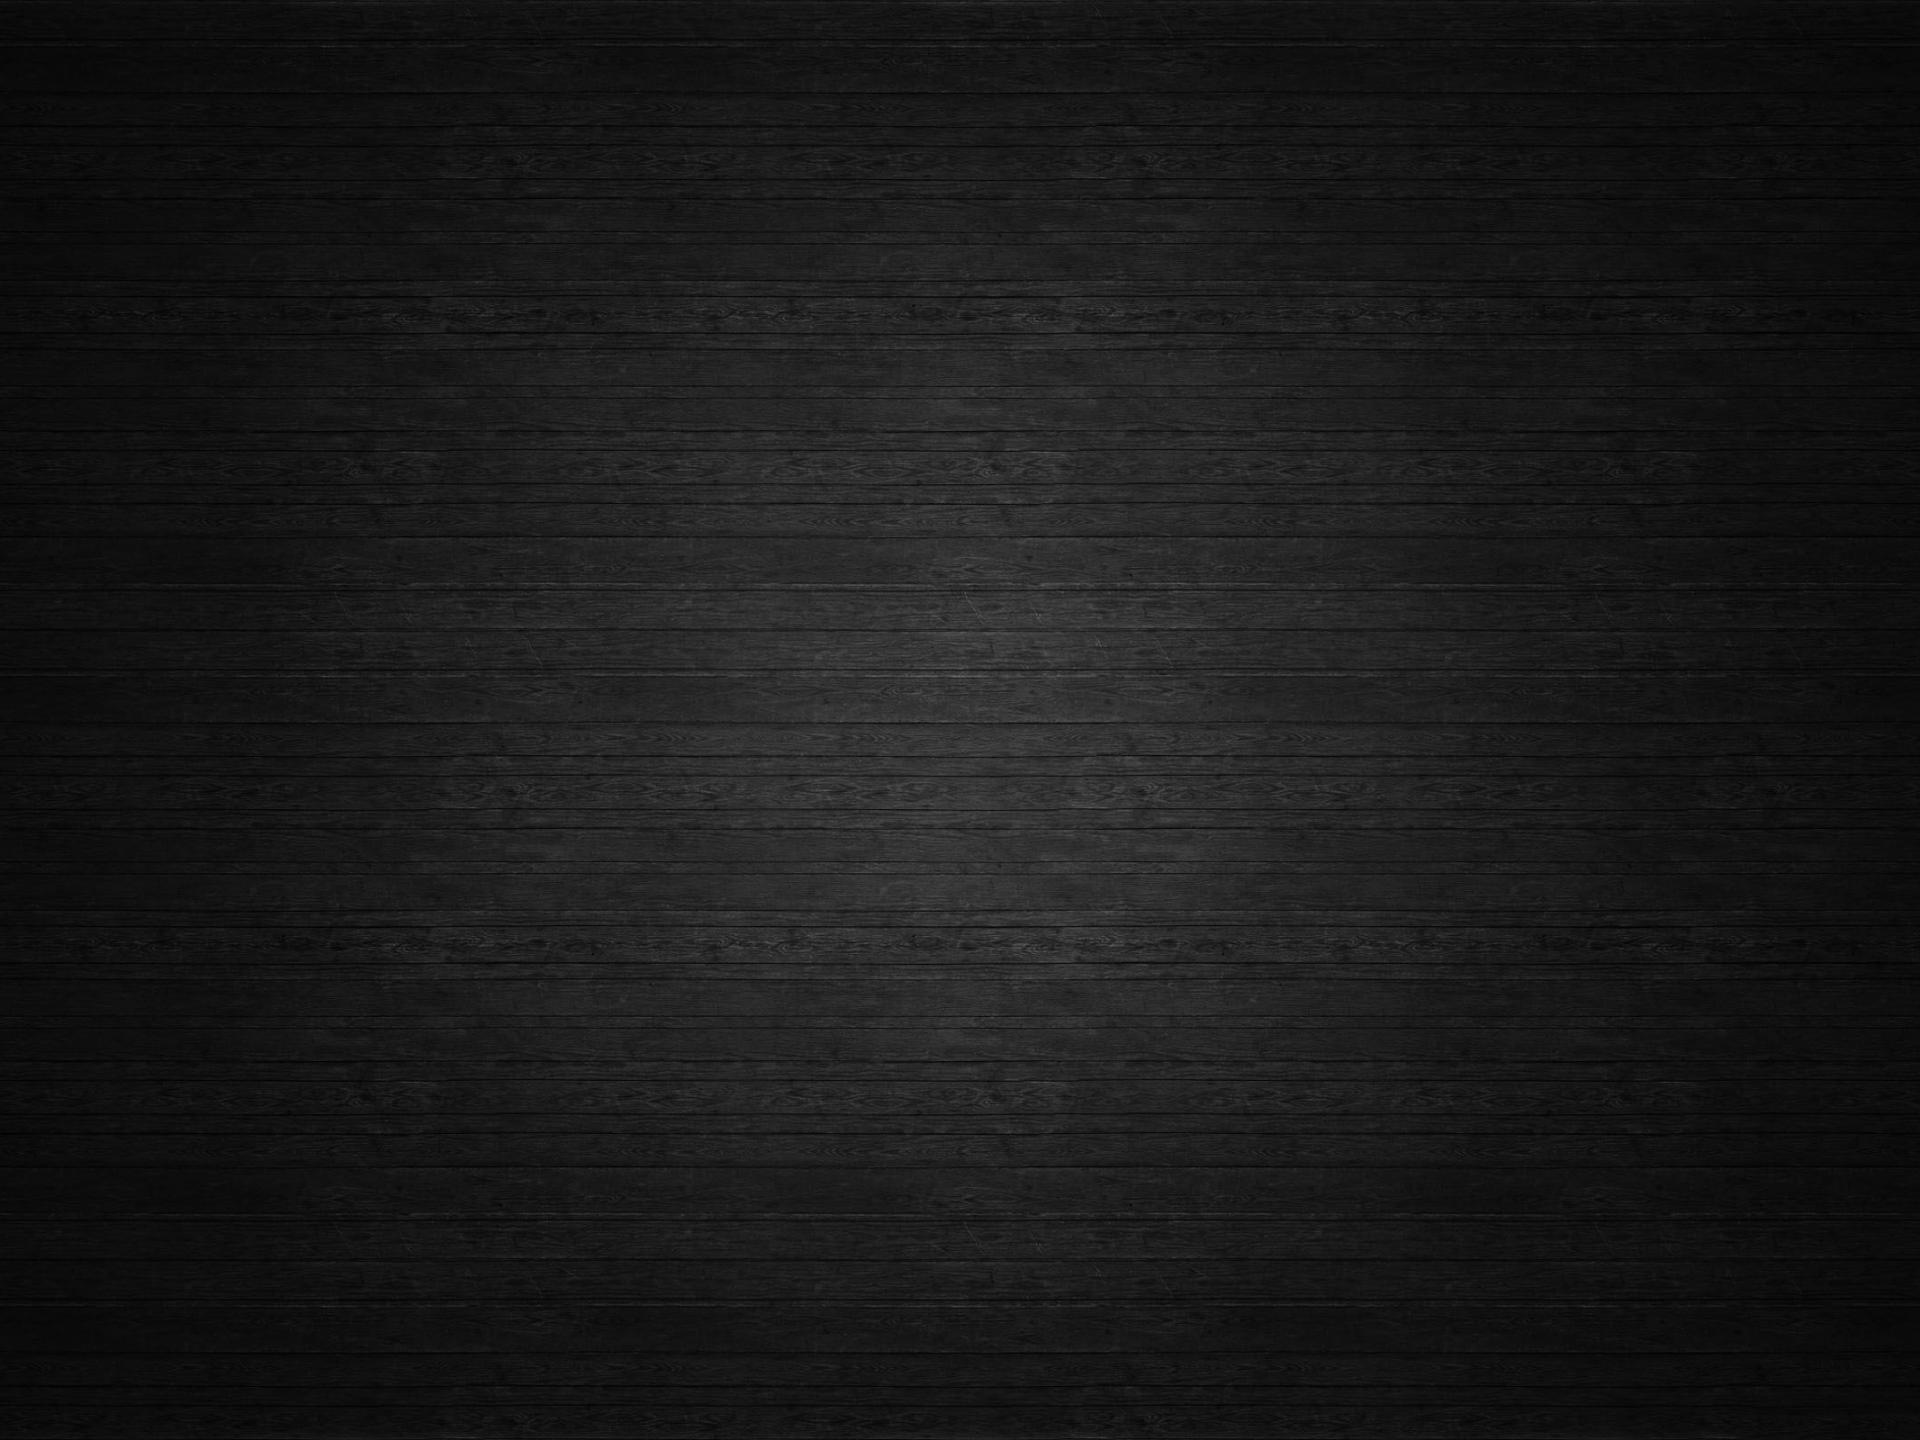 Abstract Black Backgrounds Wallpaper Cave